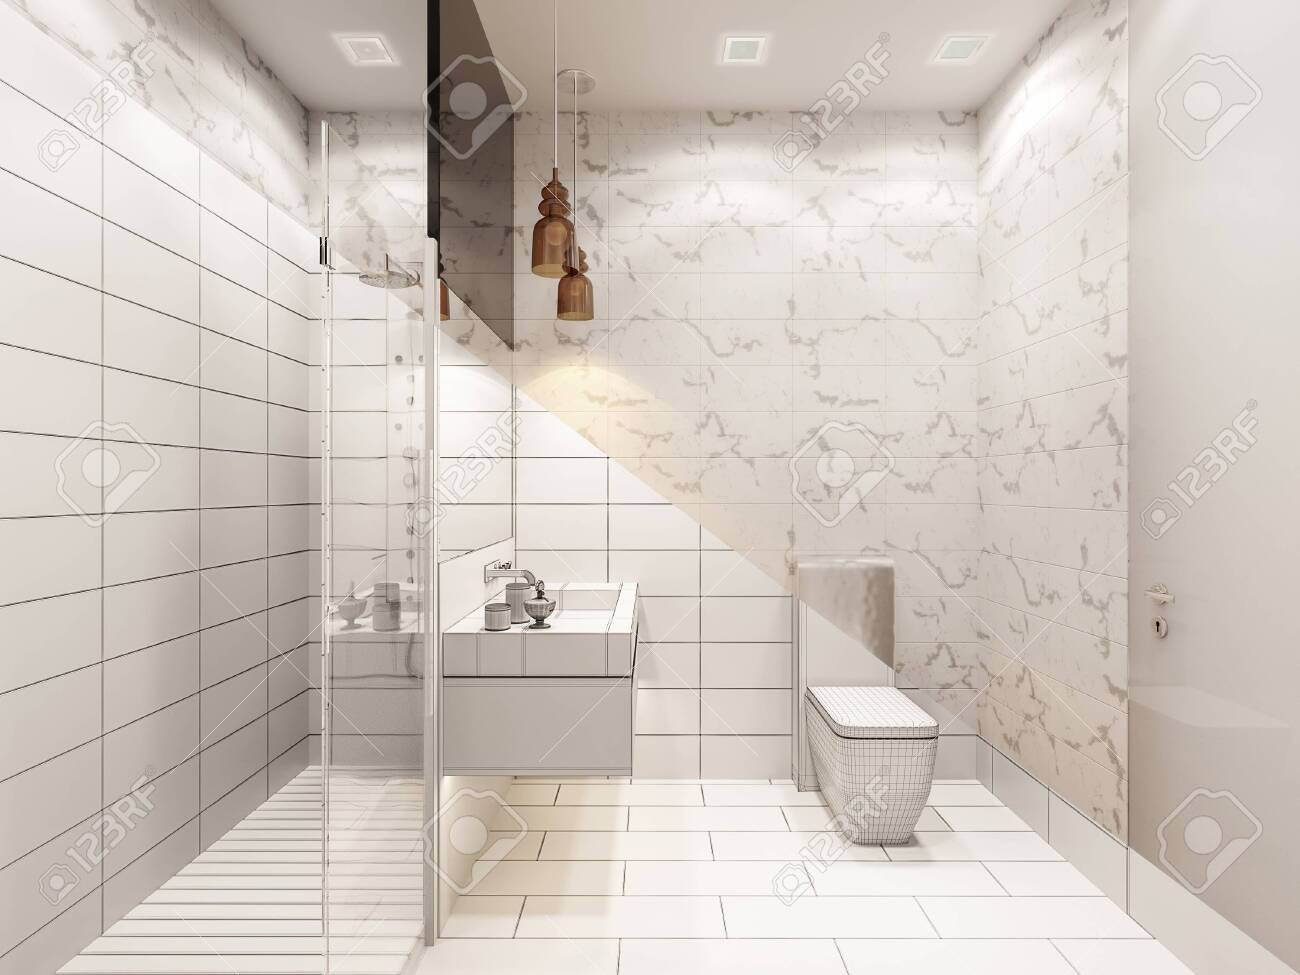 3d Render Of The Interior Of The Bathroom With Shower Illustration Stock Photo Picture And Royalty Free Image Image 141918353